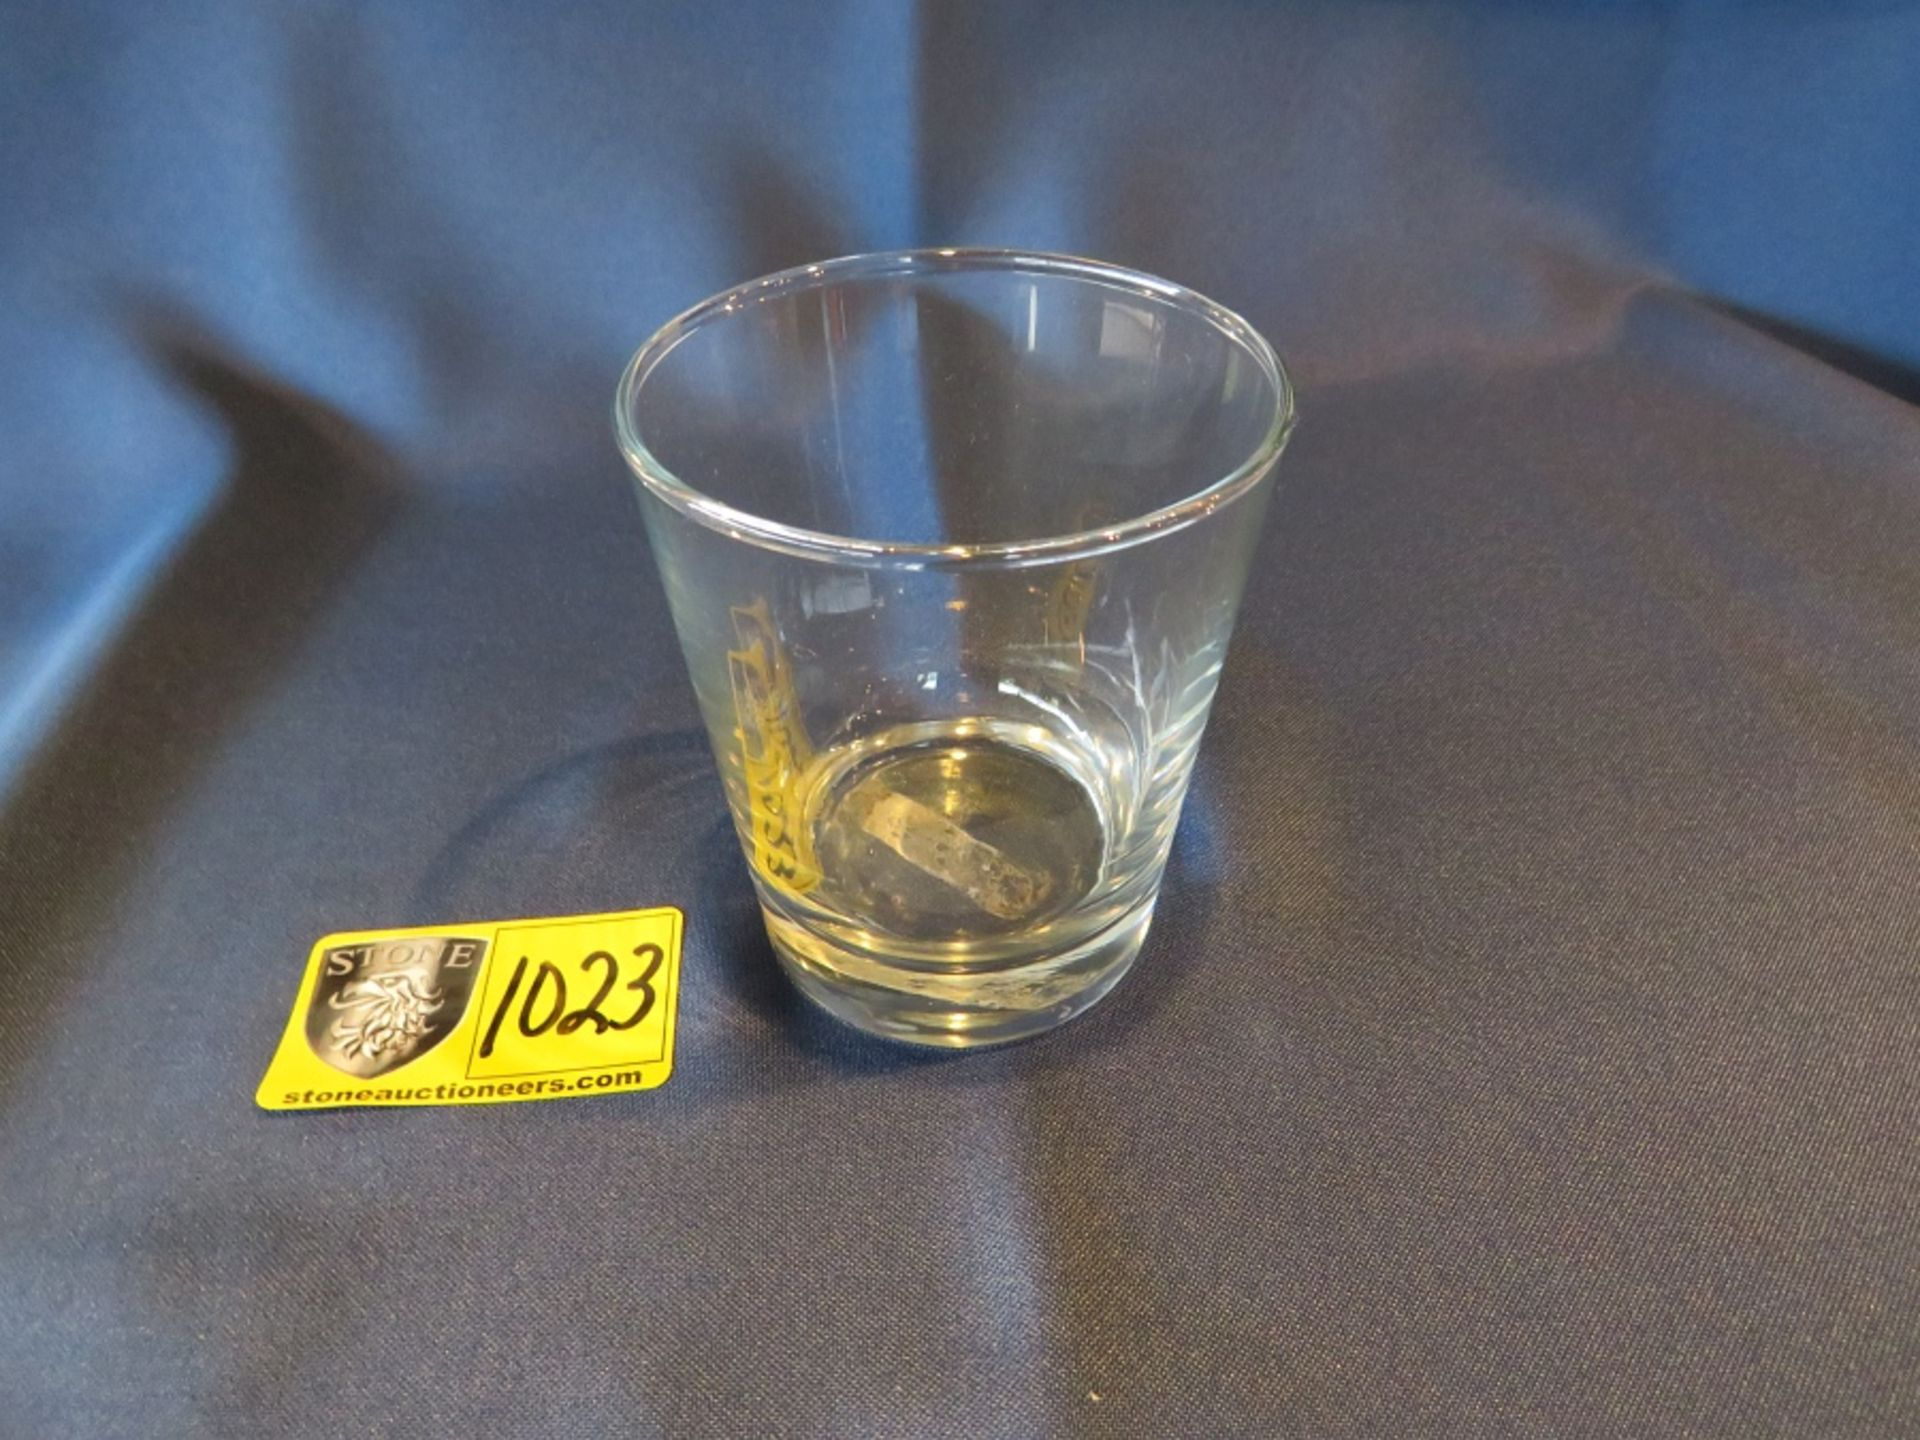 Lot 1023 - LOBALL OLD FASHIONED 13OZ.- IN 12 RACKS- BILLED AT $9 PER RACK